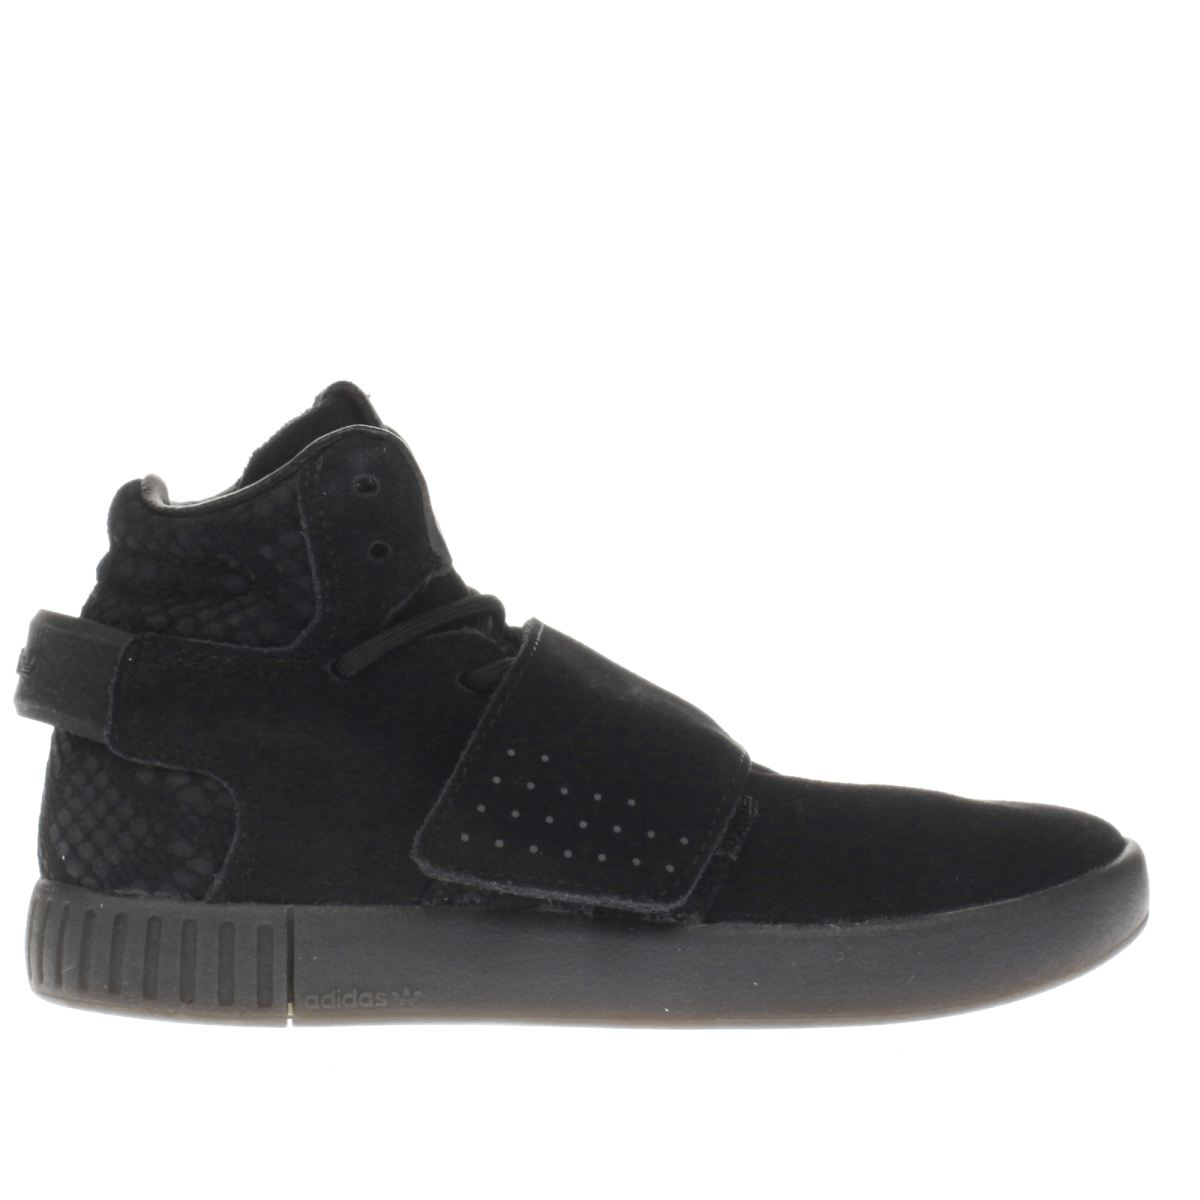 adidas black tubular invader strap Junior Trainers